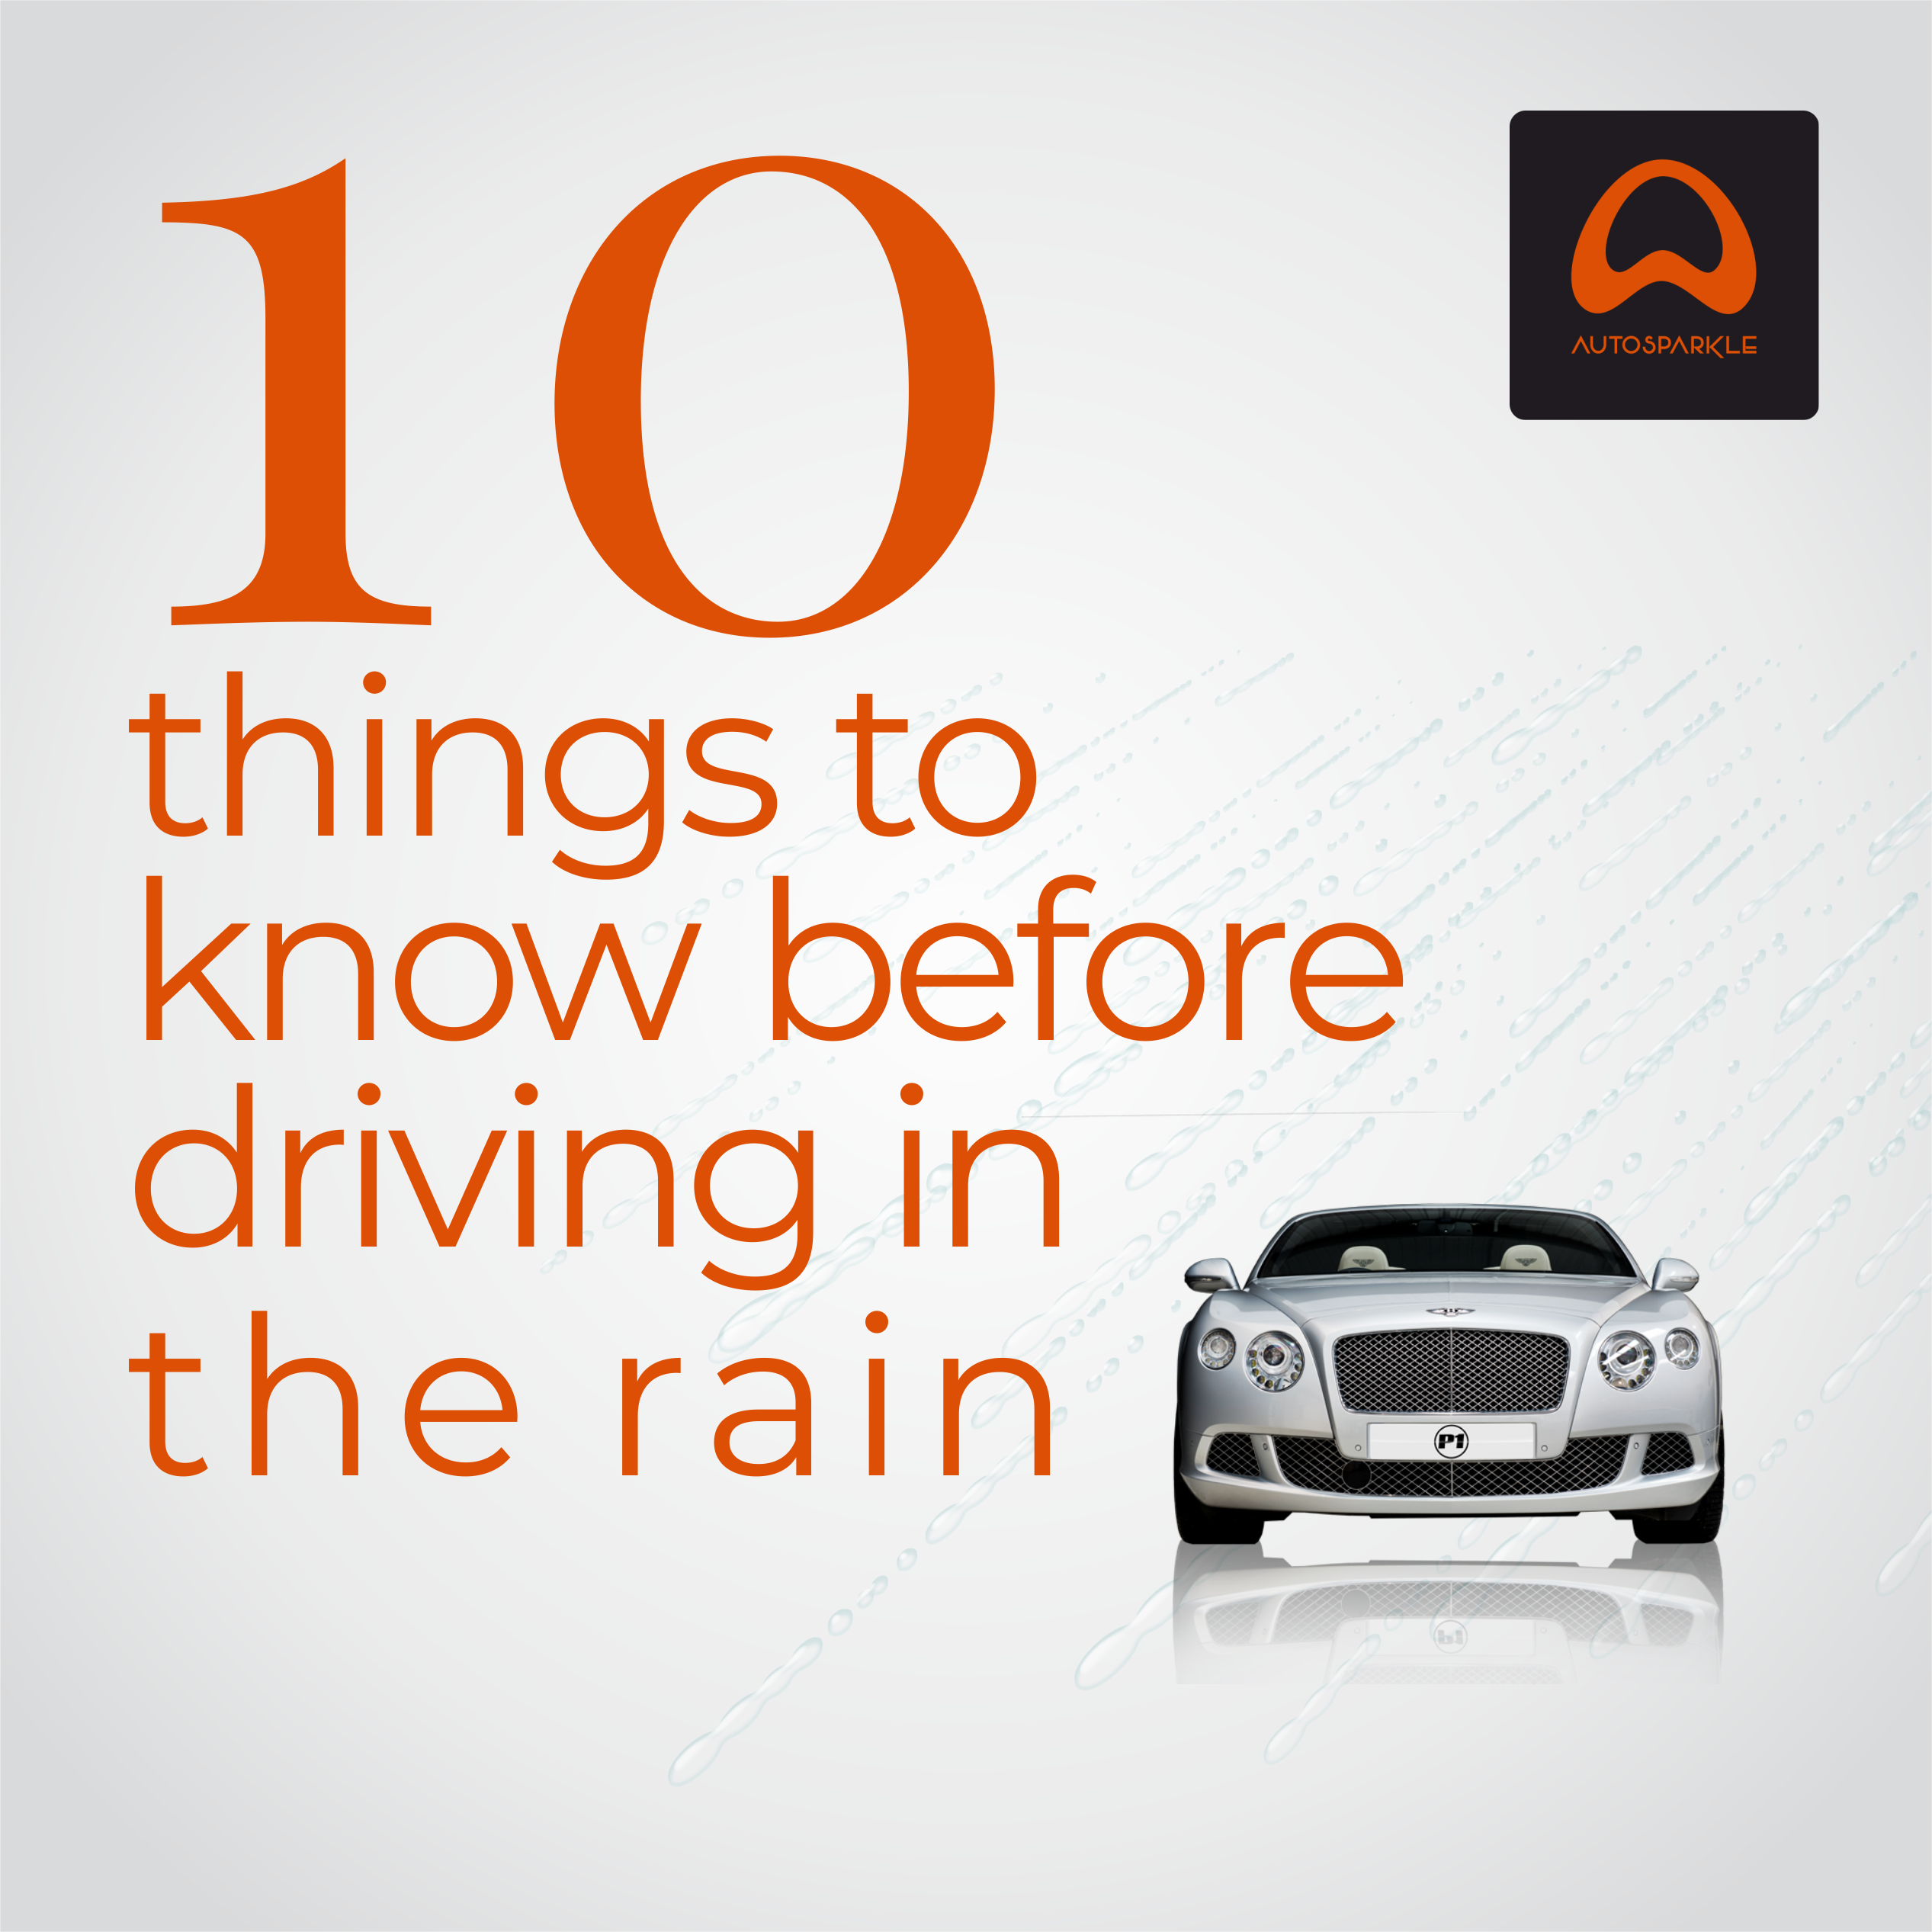 10 things to know when driving in the rain